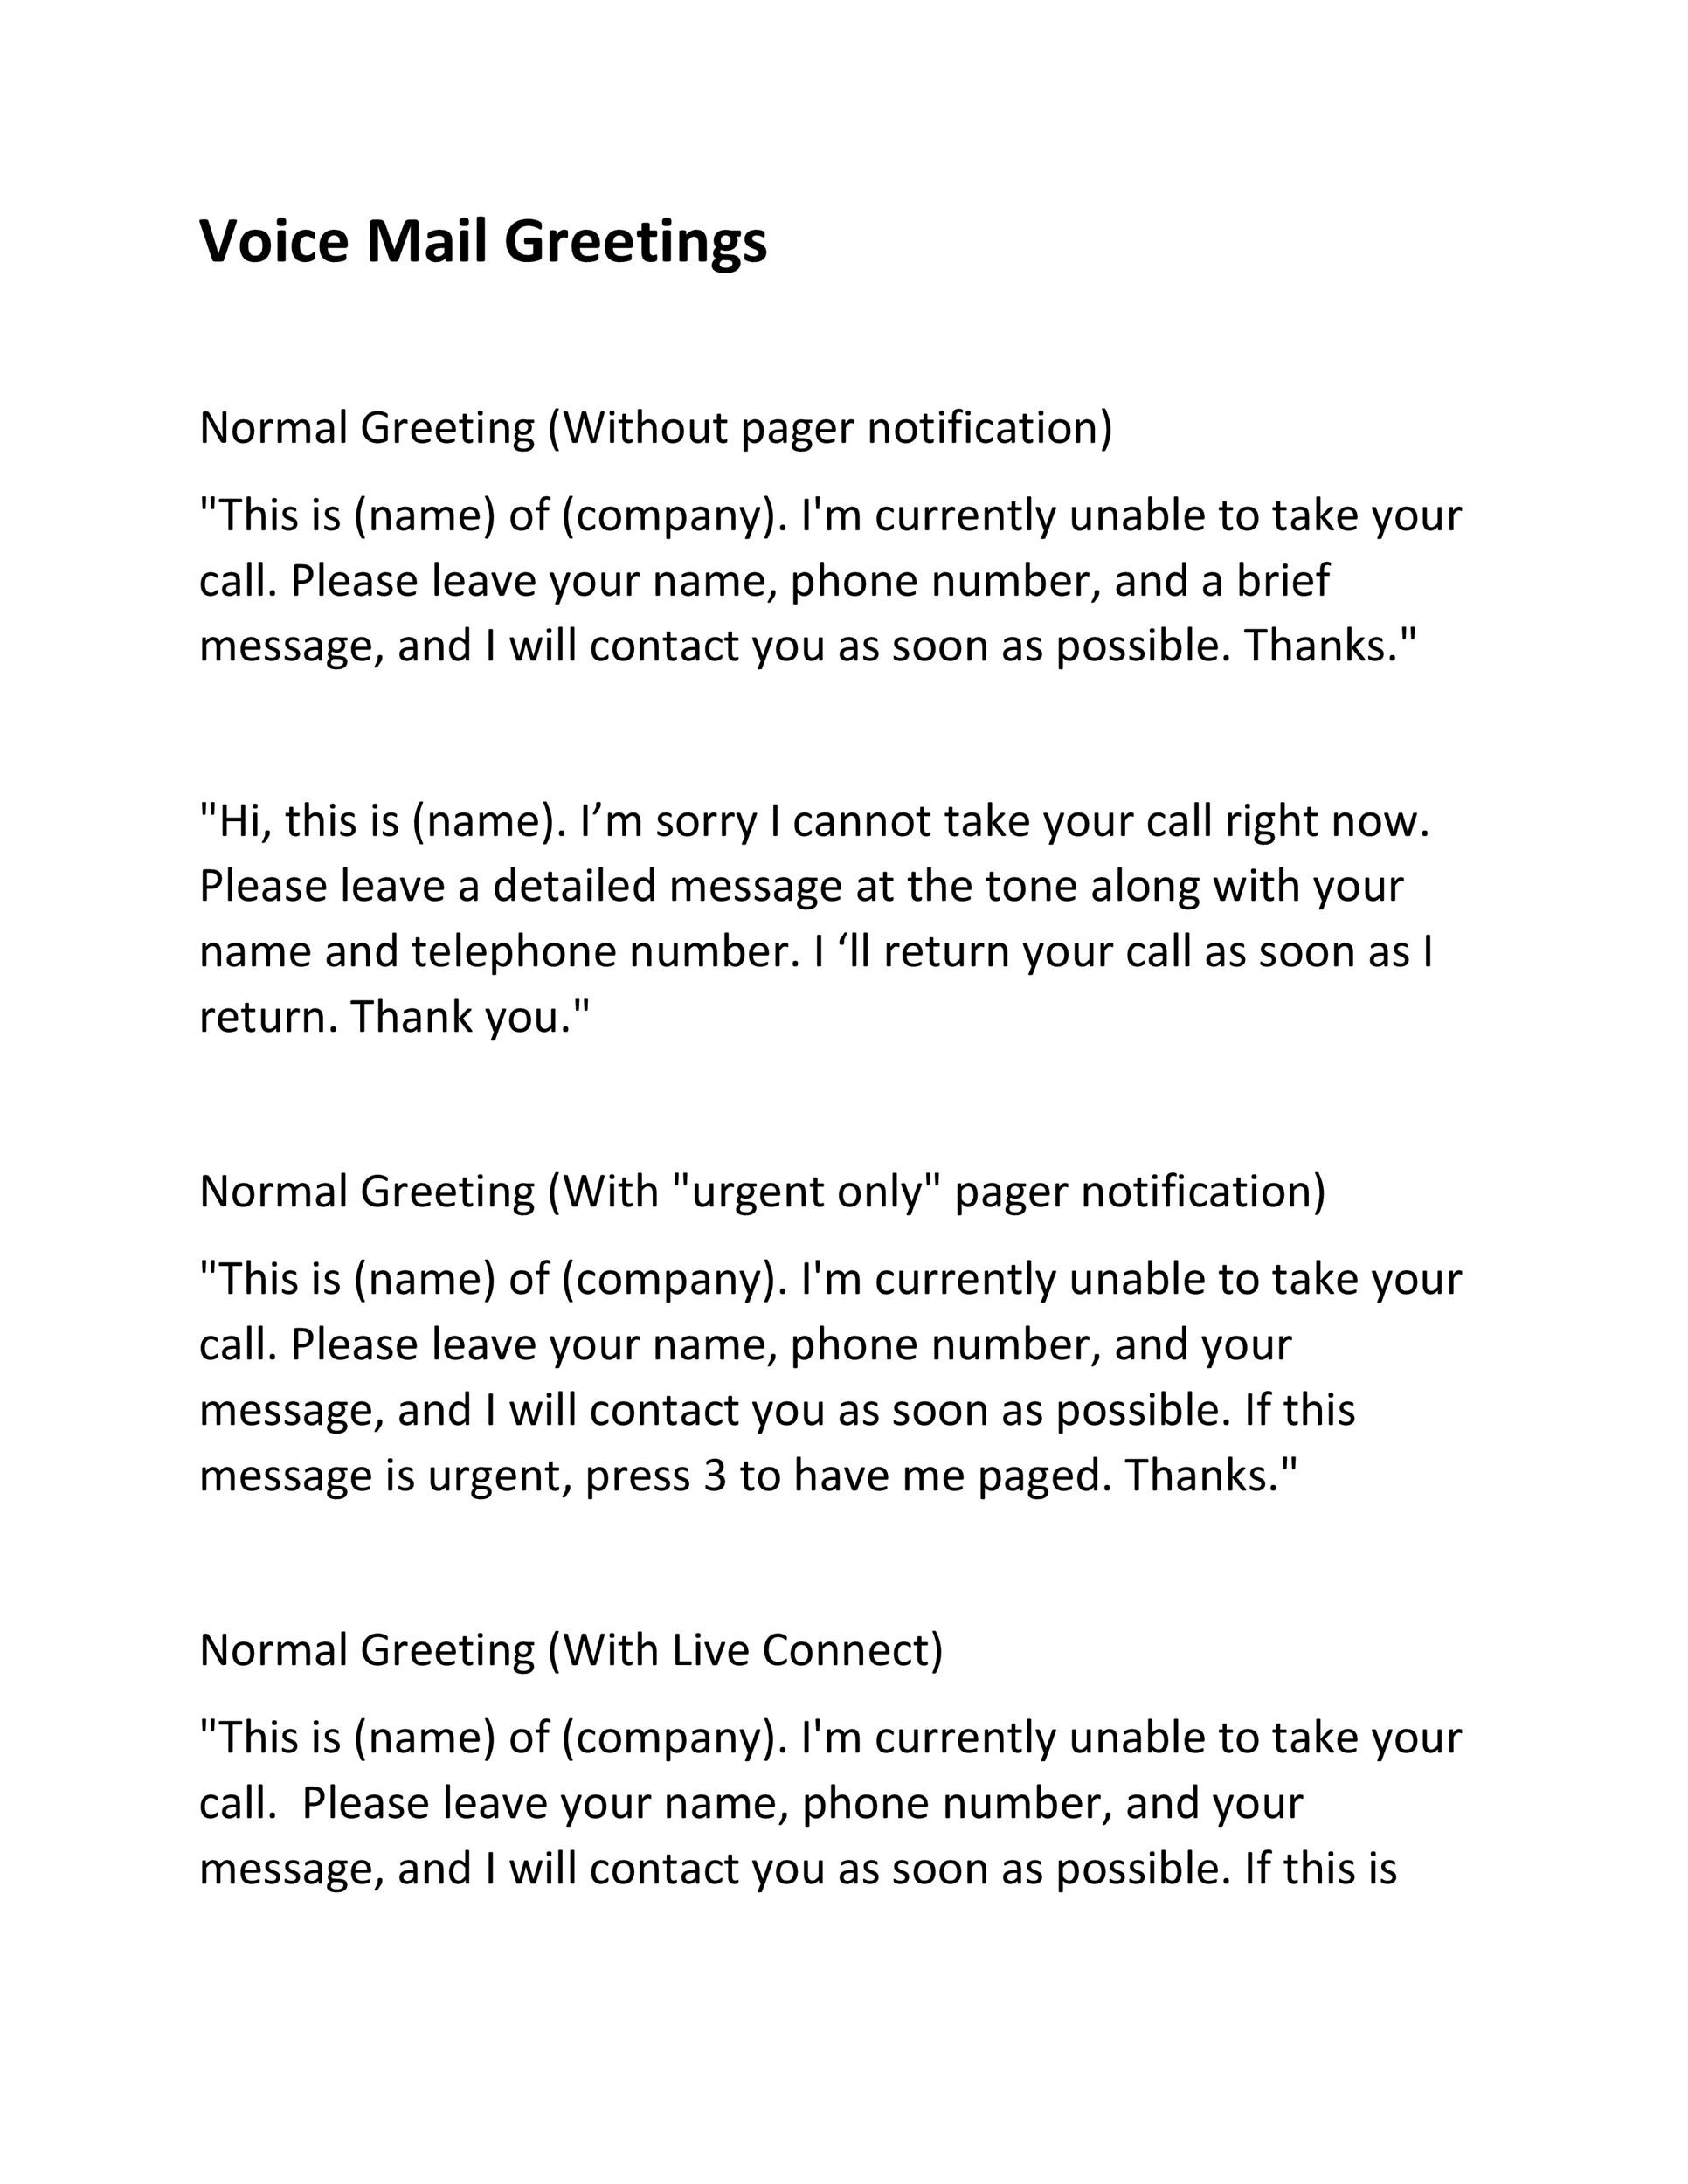 40 Voicemail Greetings Phone Message Templates Business Funny – Telephone Number Template